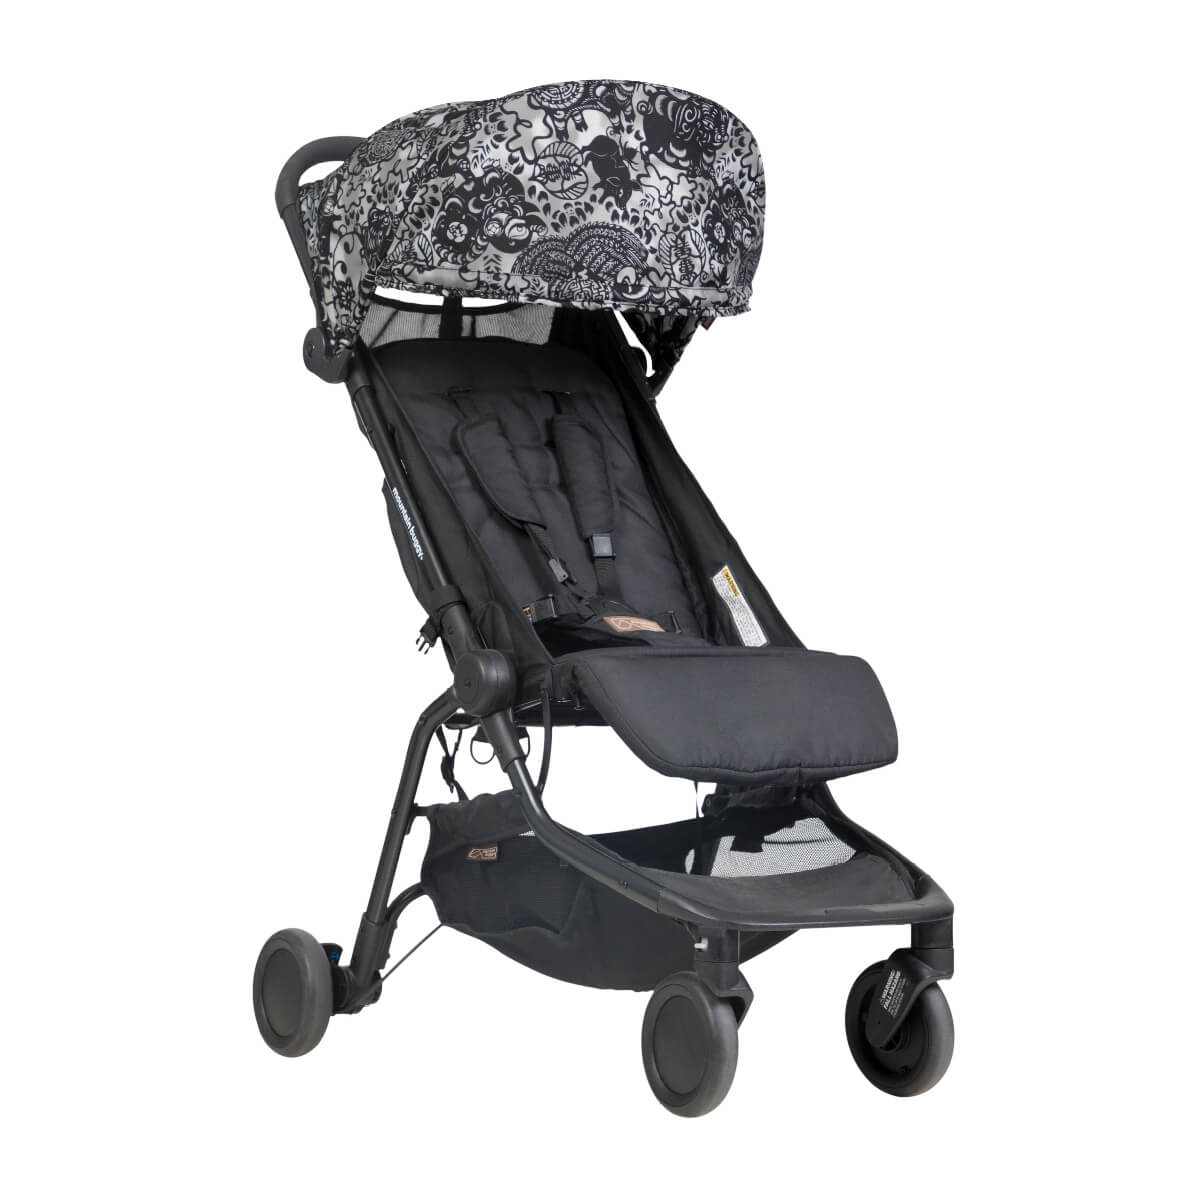 Newborn Stroller Nz Mountain Buggy Nano Stroller Year Of The Pig Out About